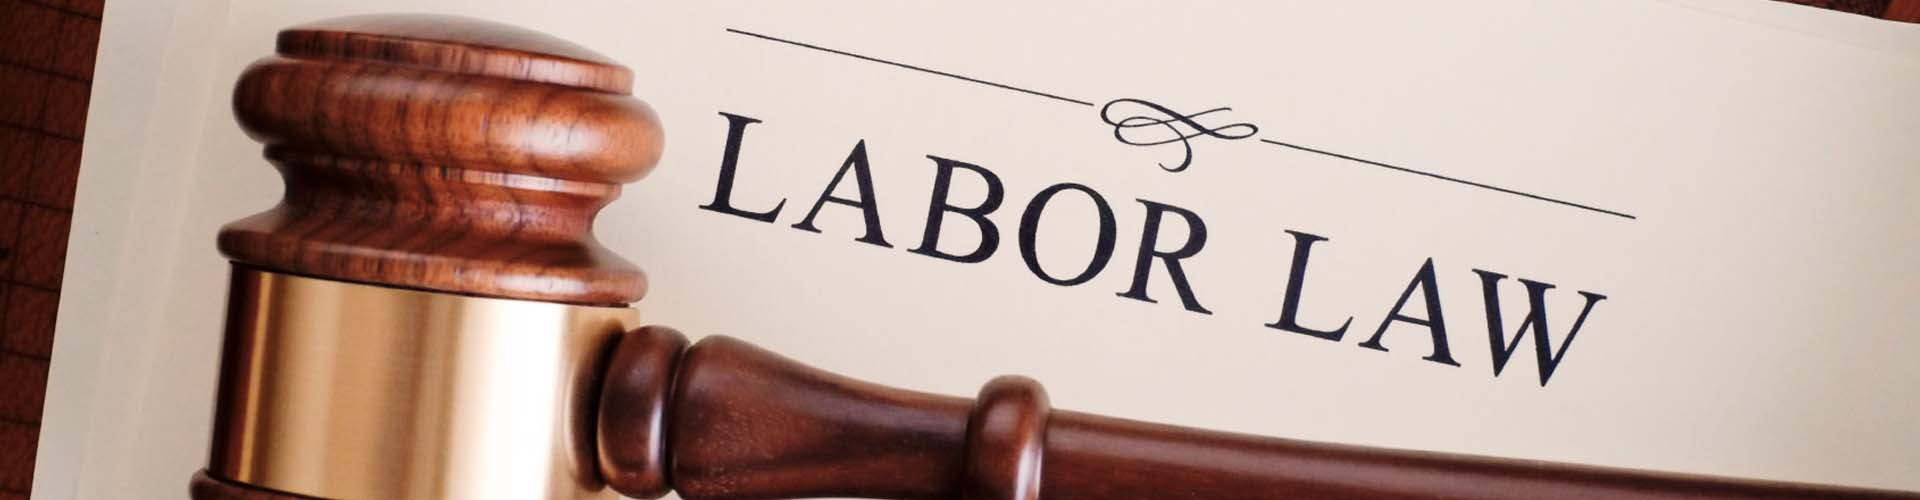 Labor law printed on paper in front of judges gavel